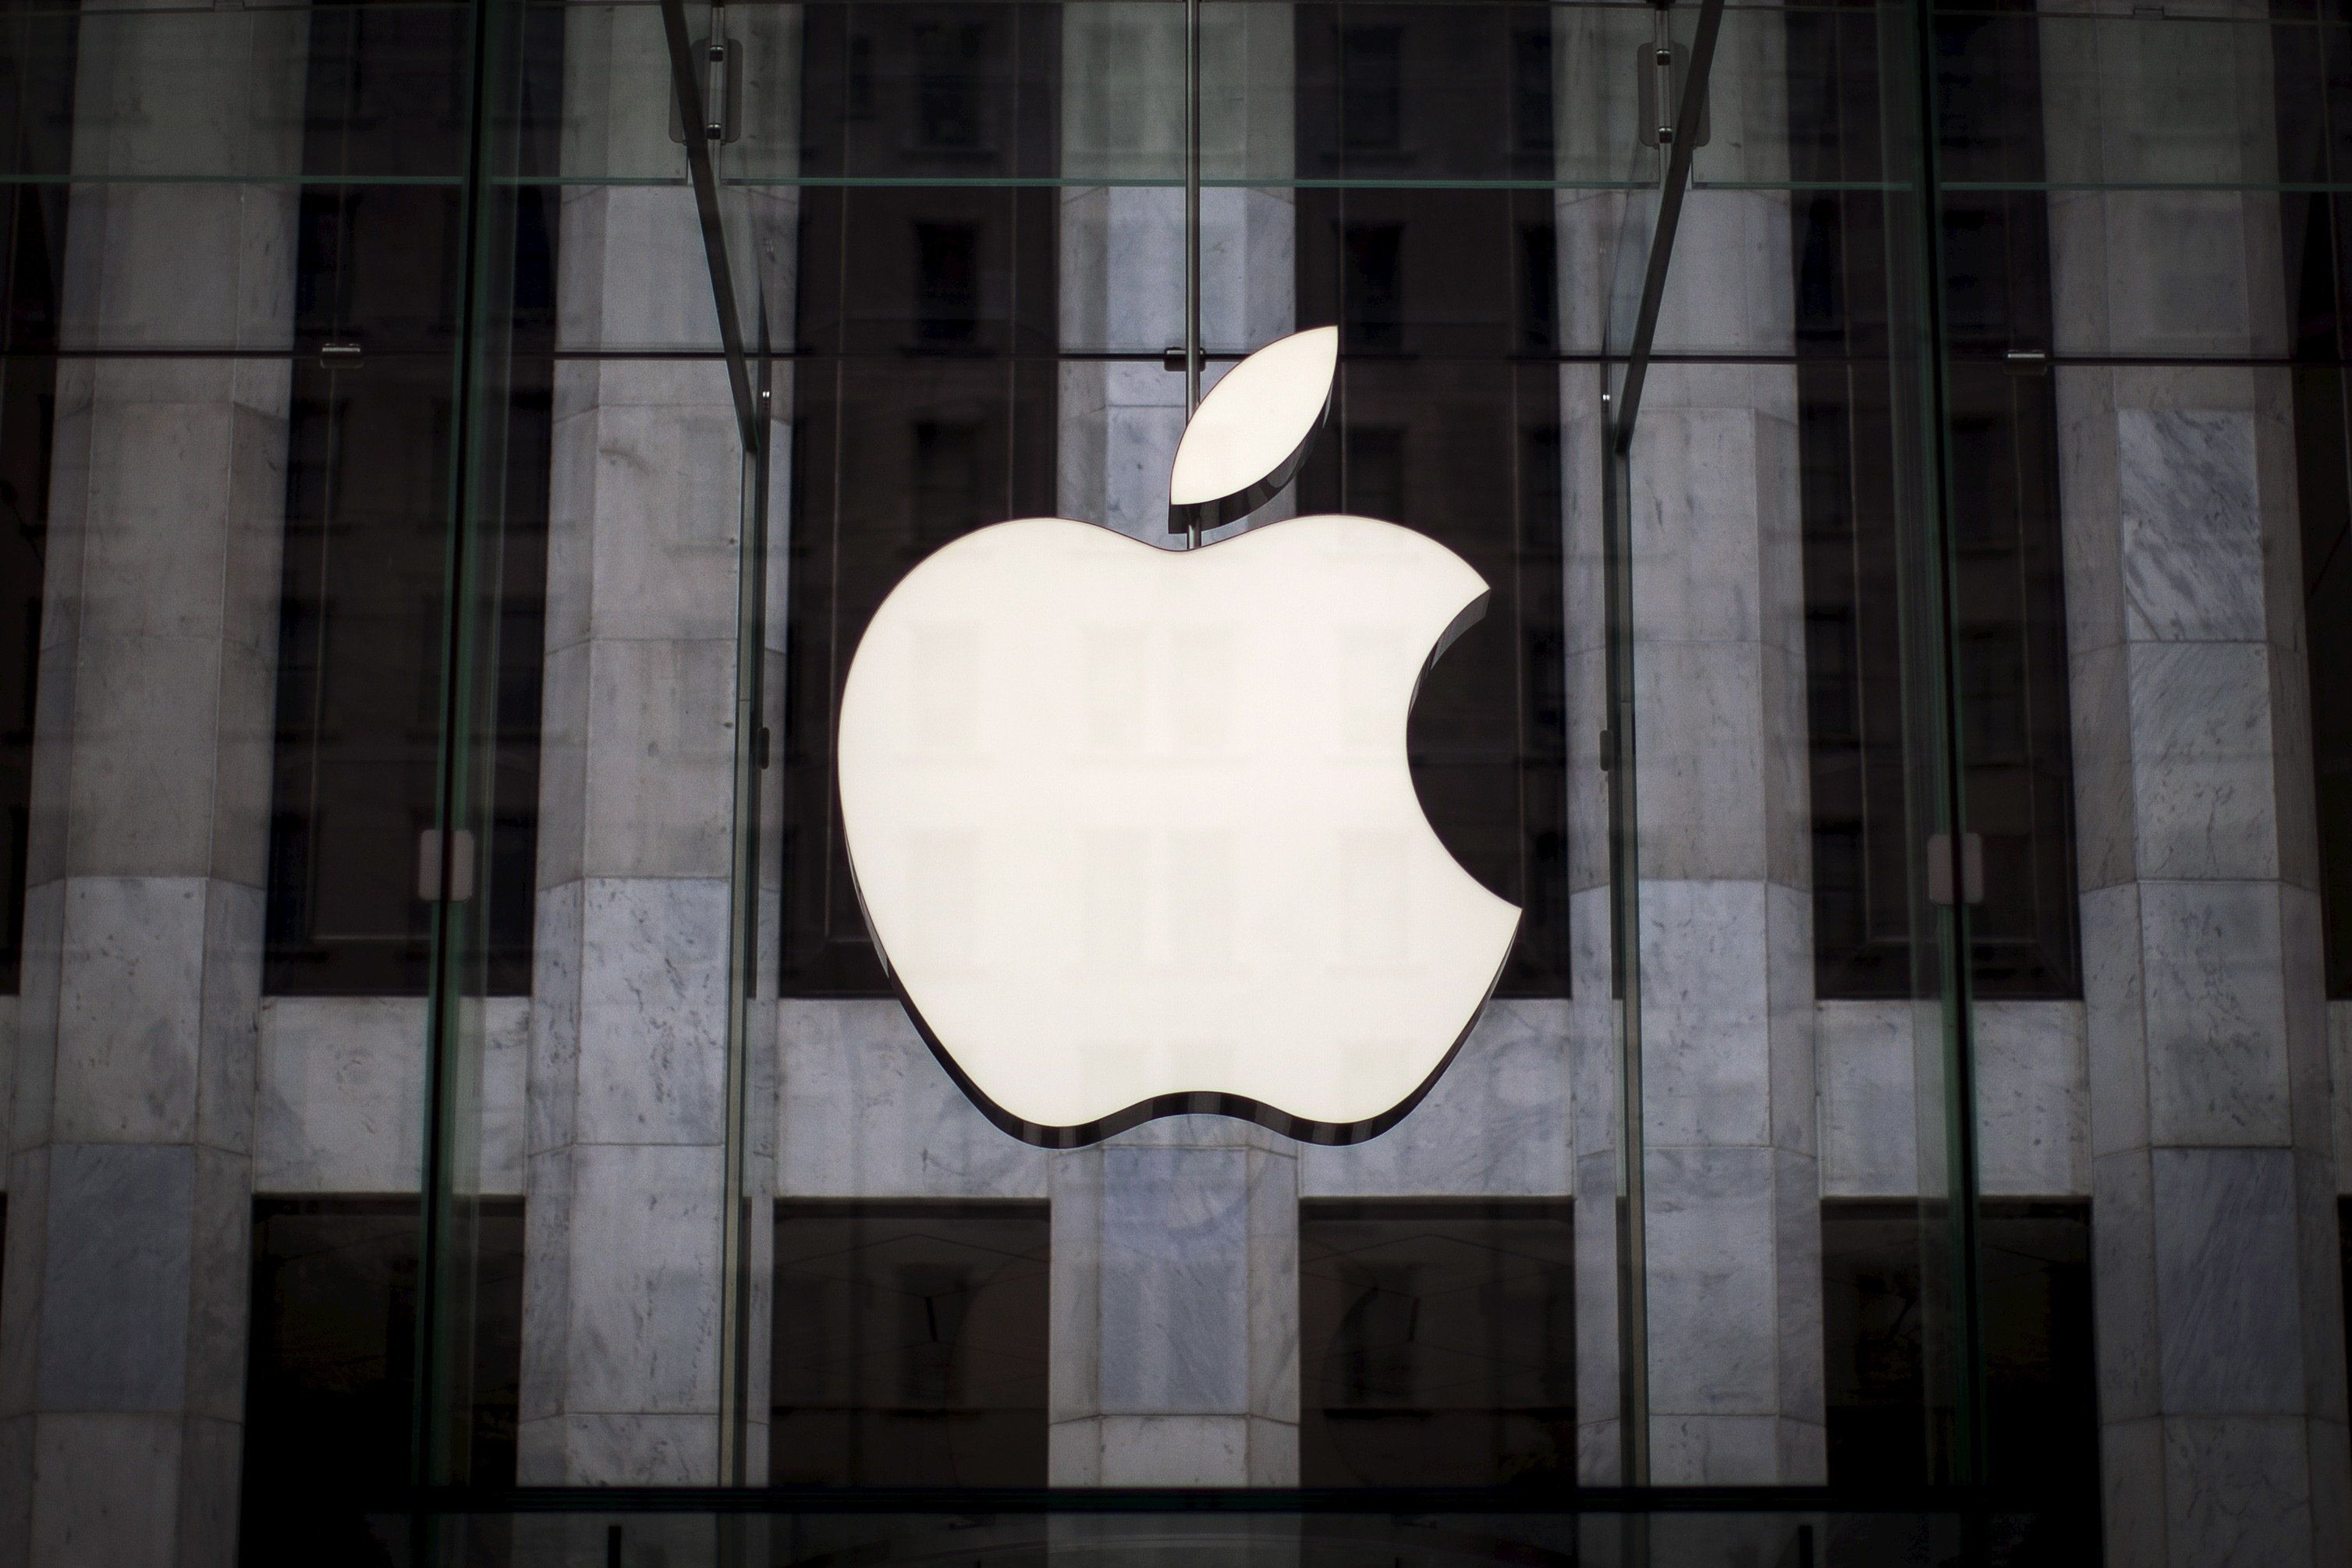 An Apple logo hangs above the entrance to the Apple store on 5th Avenue in the Manhattan borough of New York City, July 21, 2015. Apple Inc said it is experiencing some issues with its App Store, Apple Music, iTunes Store and some other services. The company did not provide details but said only some users were affected. Checks by Reuters on several Apple sites in Asia, Europe and North and South America all showed issues with the services. REUTERS/Mike Segar